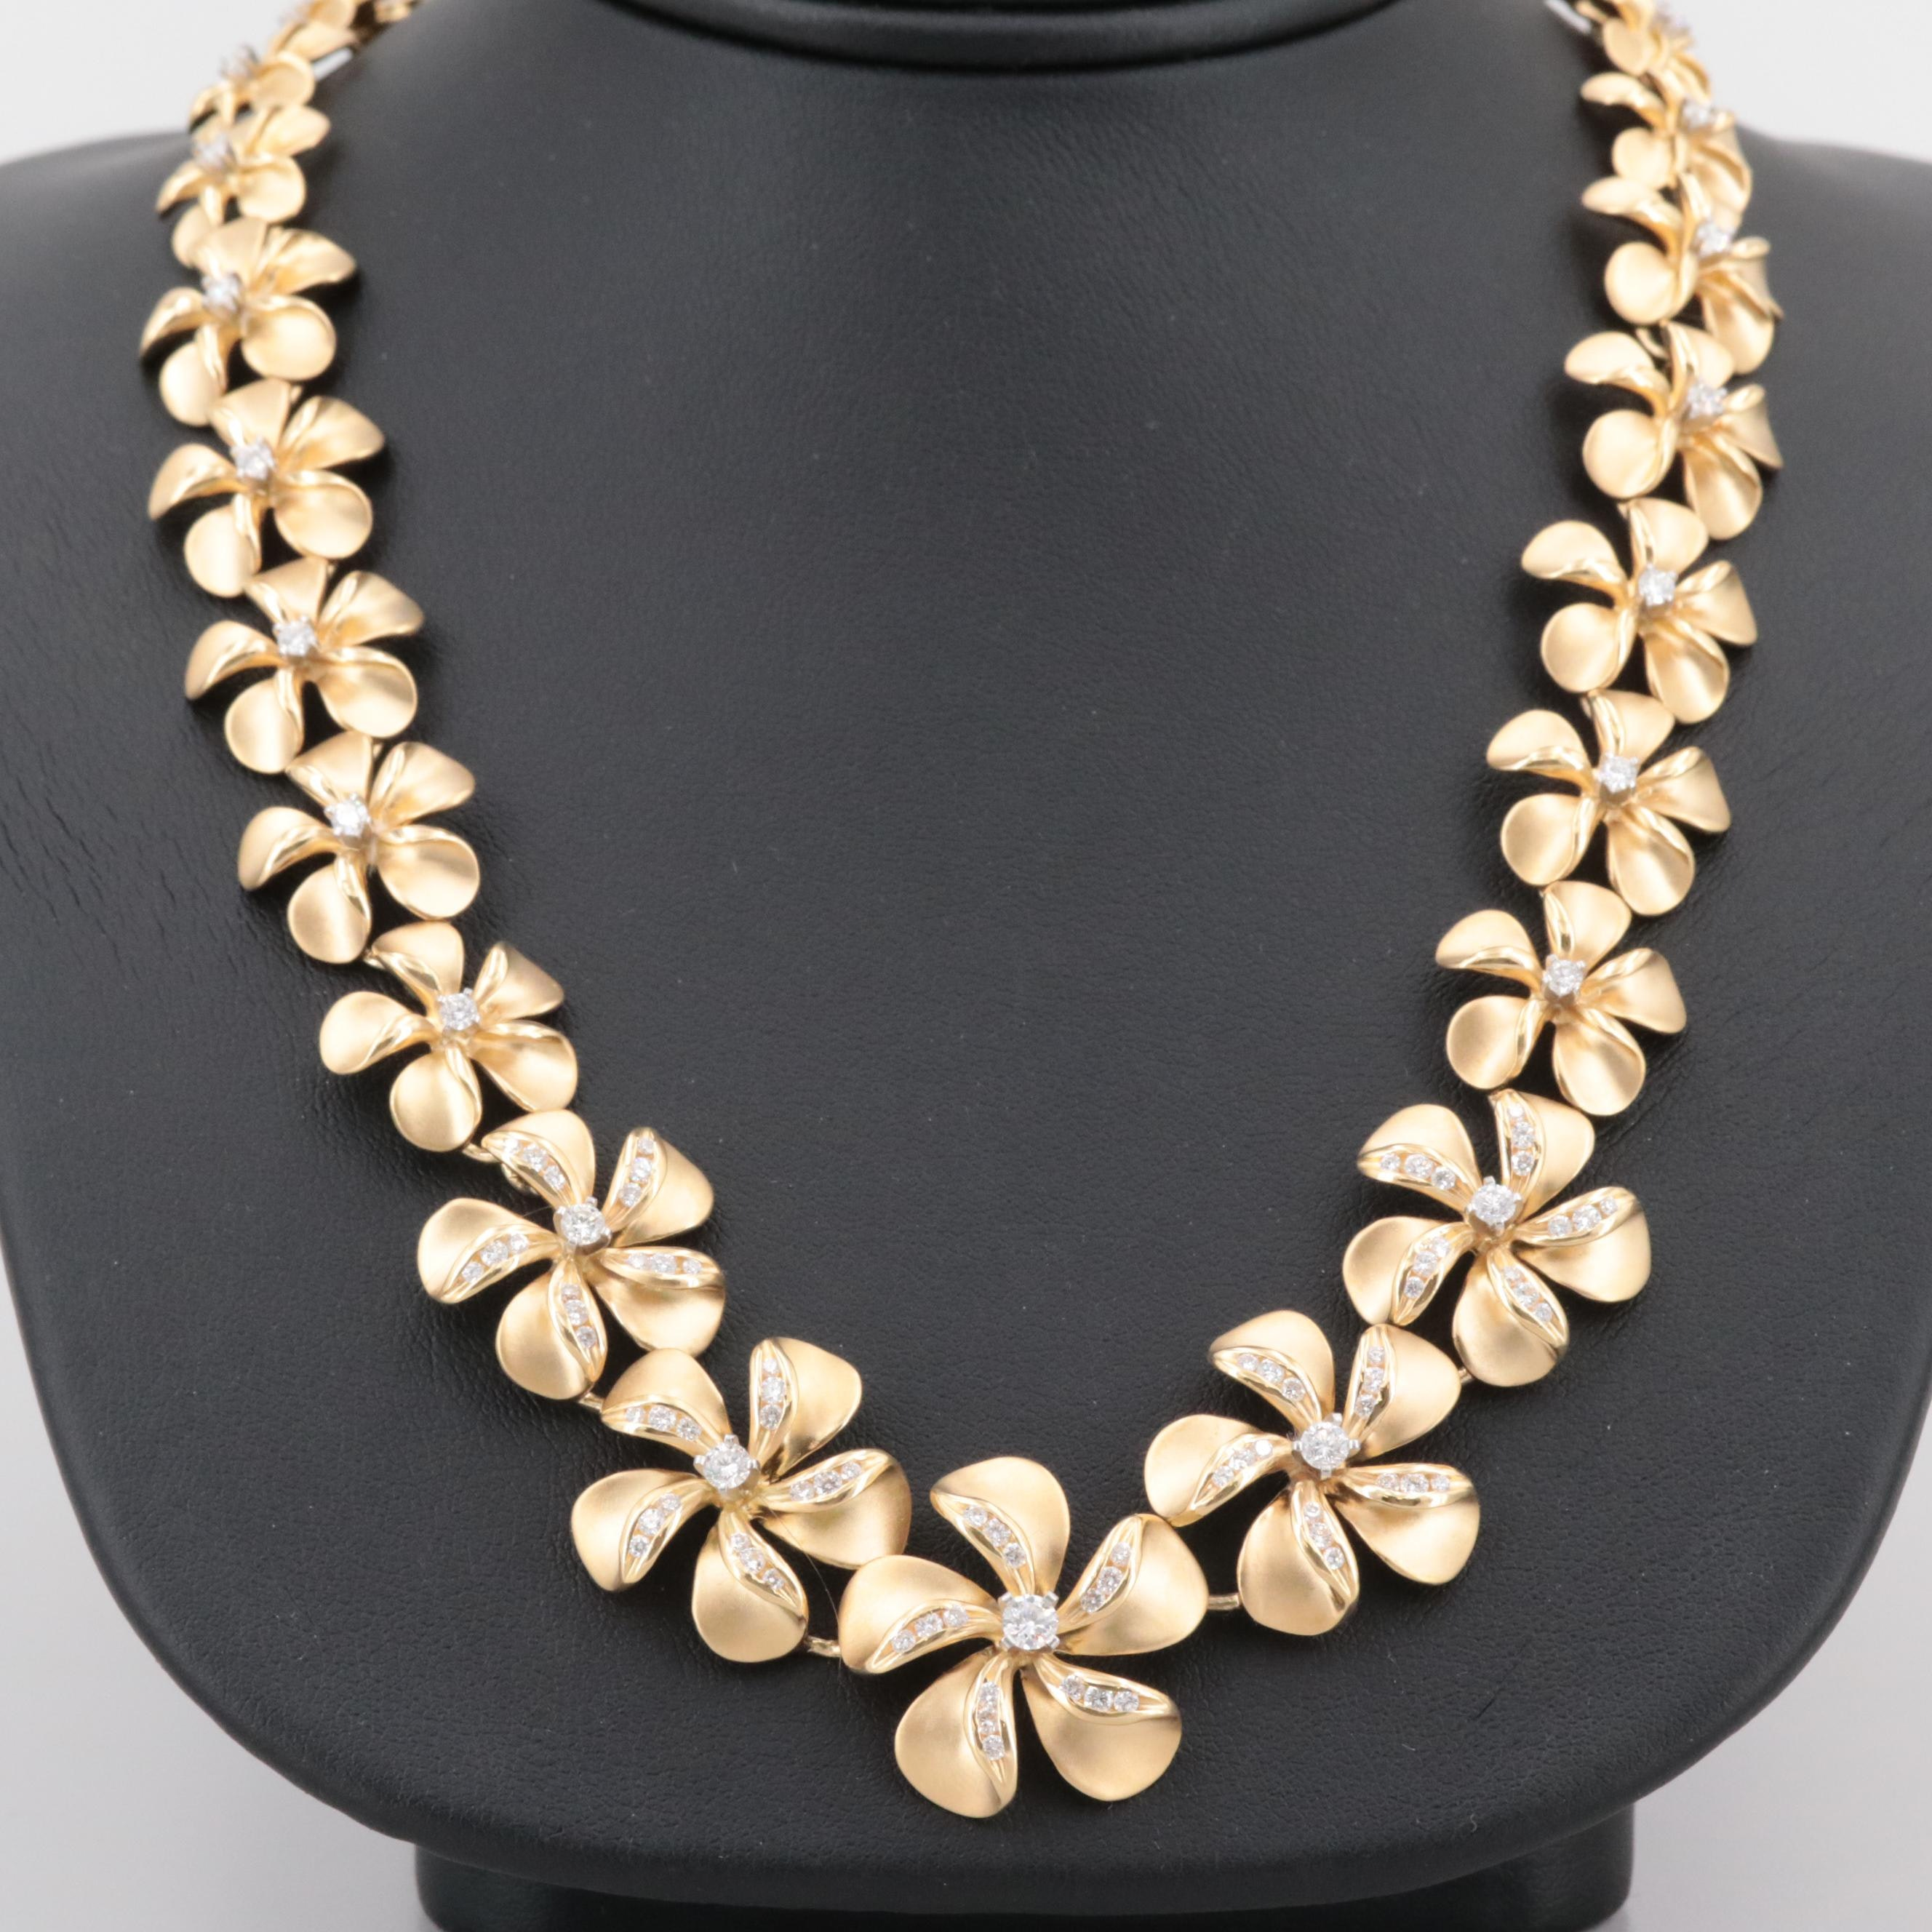 Na Hoku 18K Yellow Gold 2.71 CTW Plumeria Flower Necklace with Platinum Settings